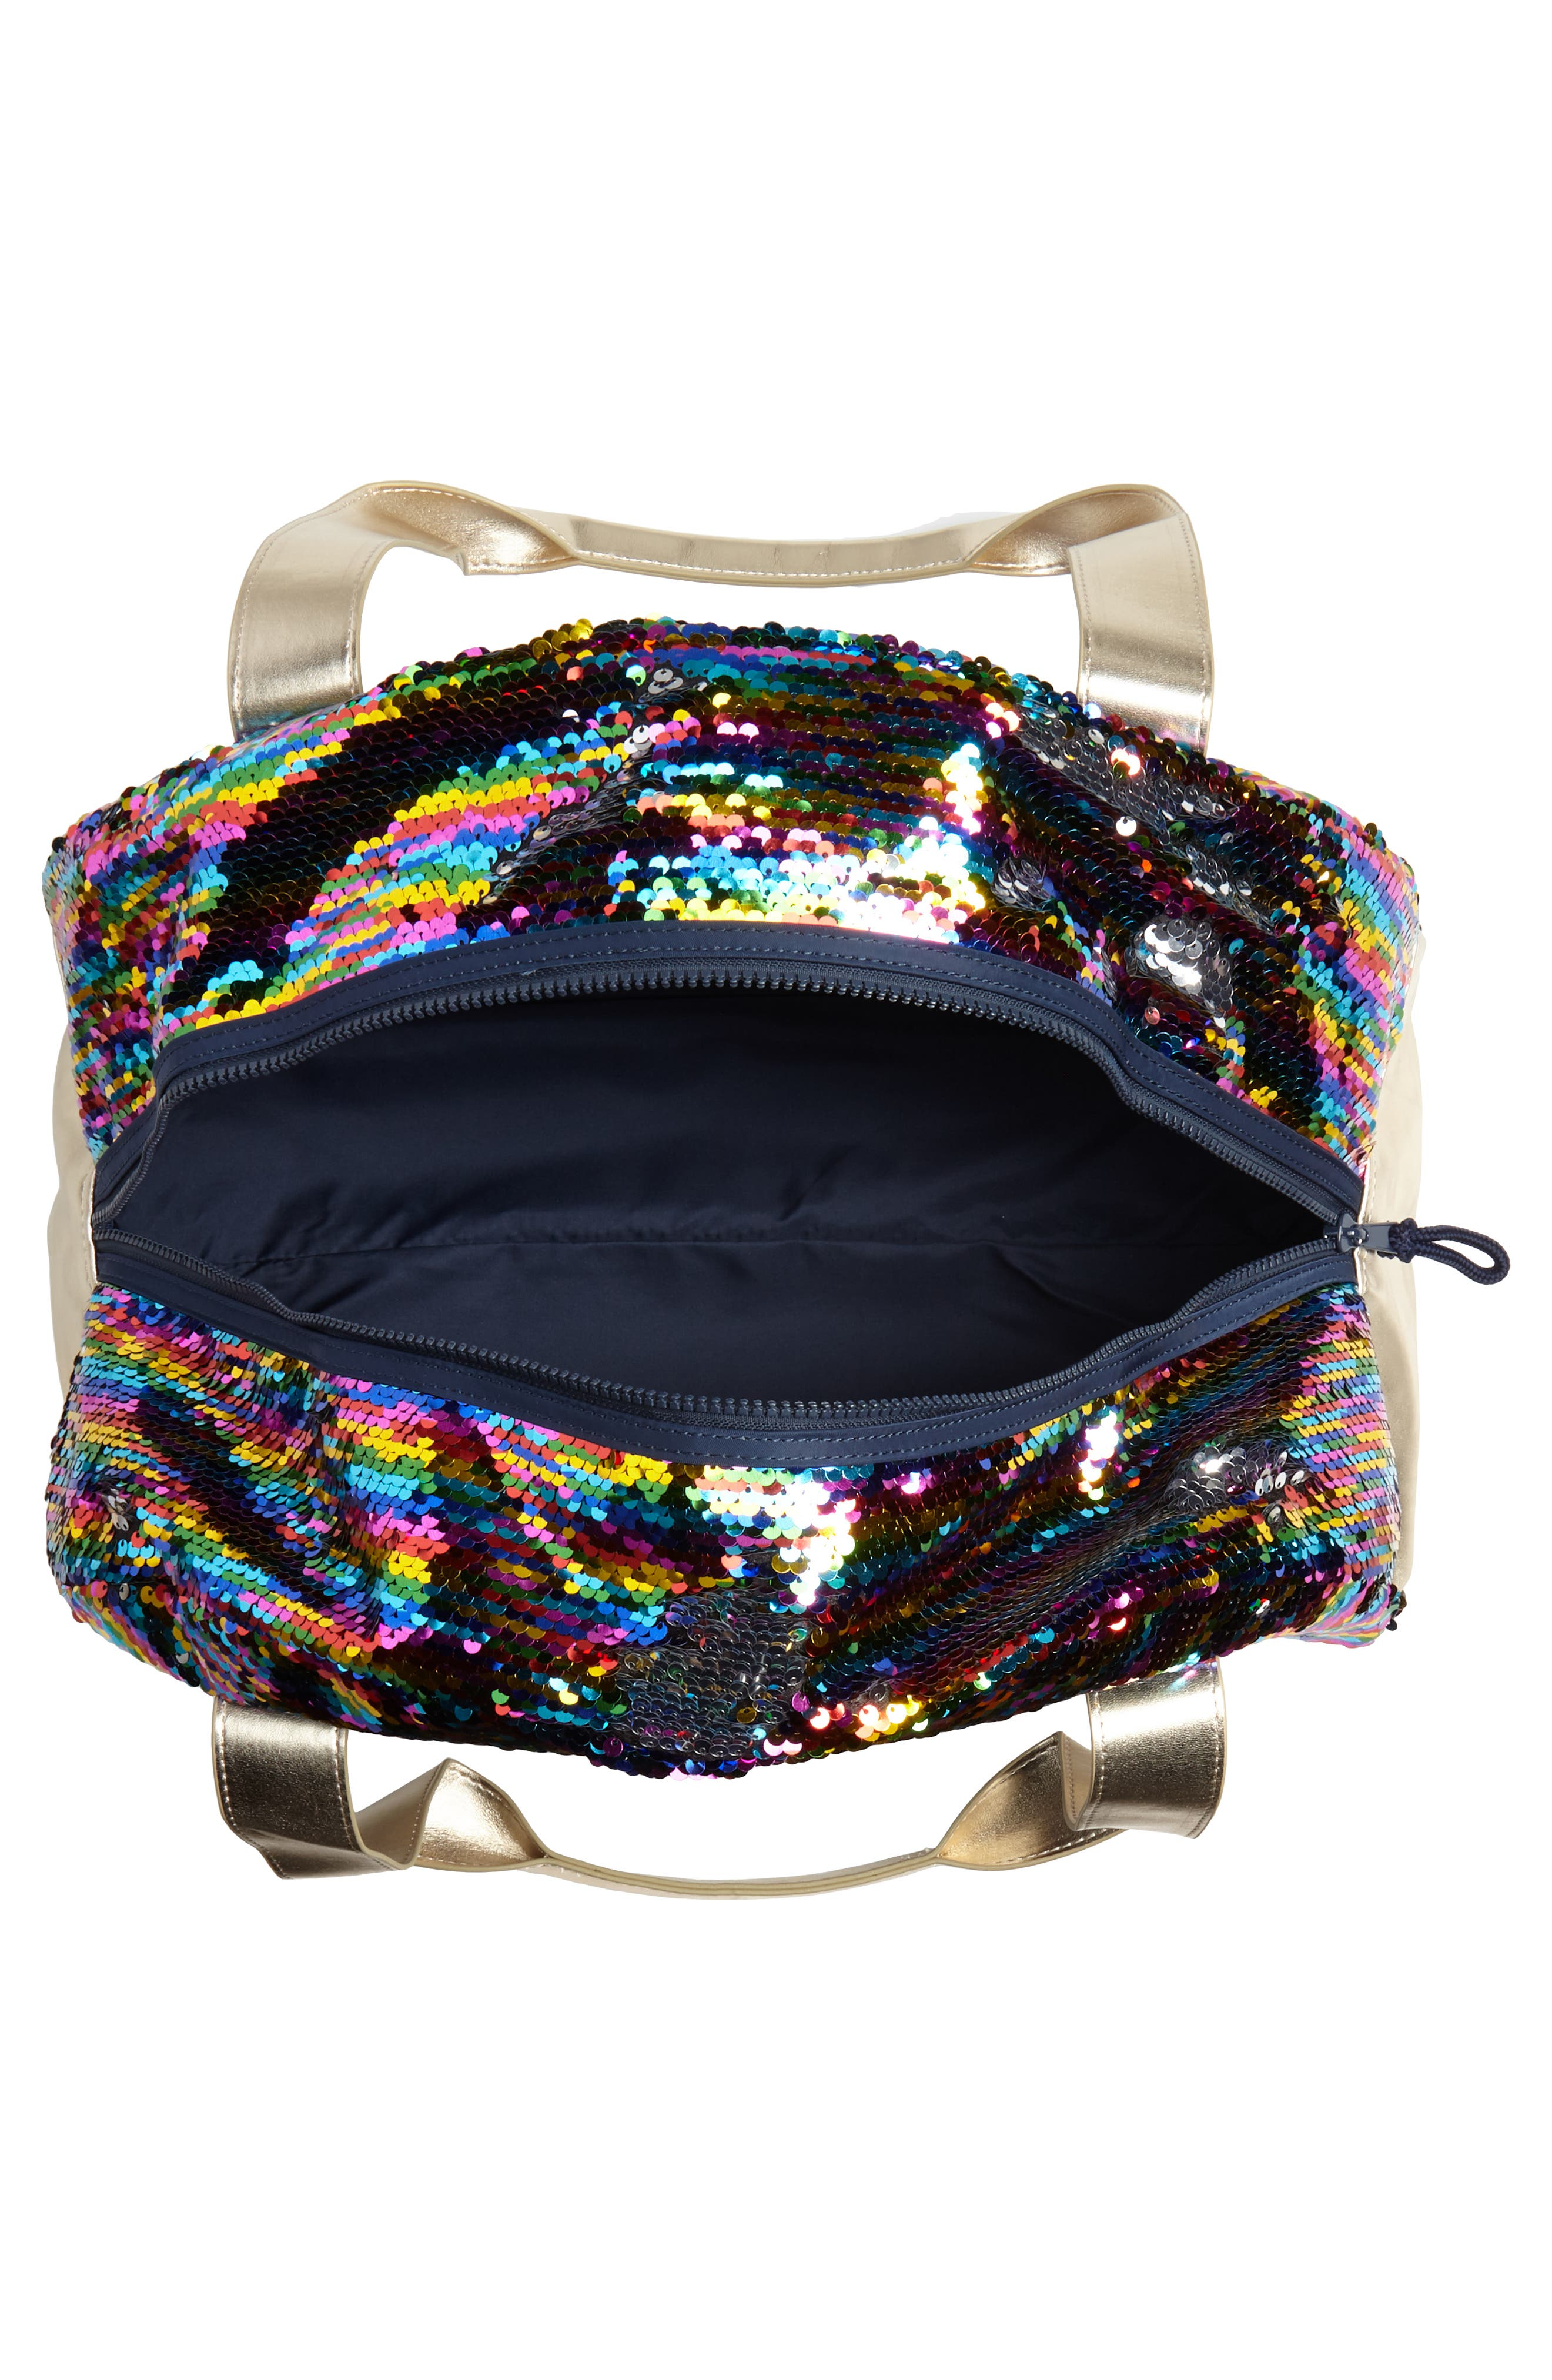 Overnight Bag with Reversible Sequins,                             Alternate thumbnail 3, color,                             964